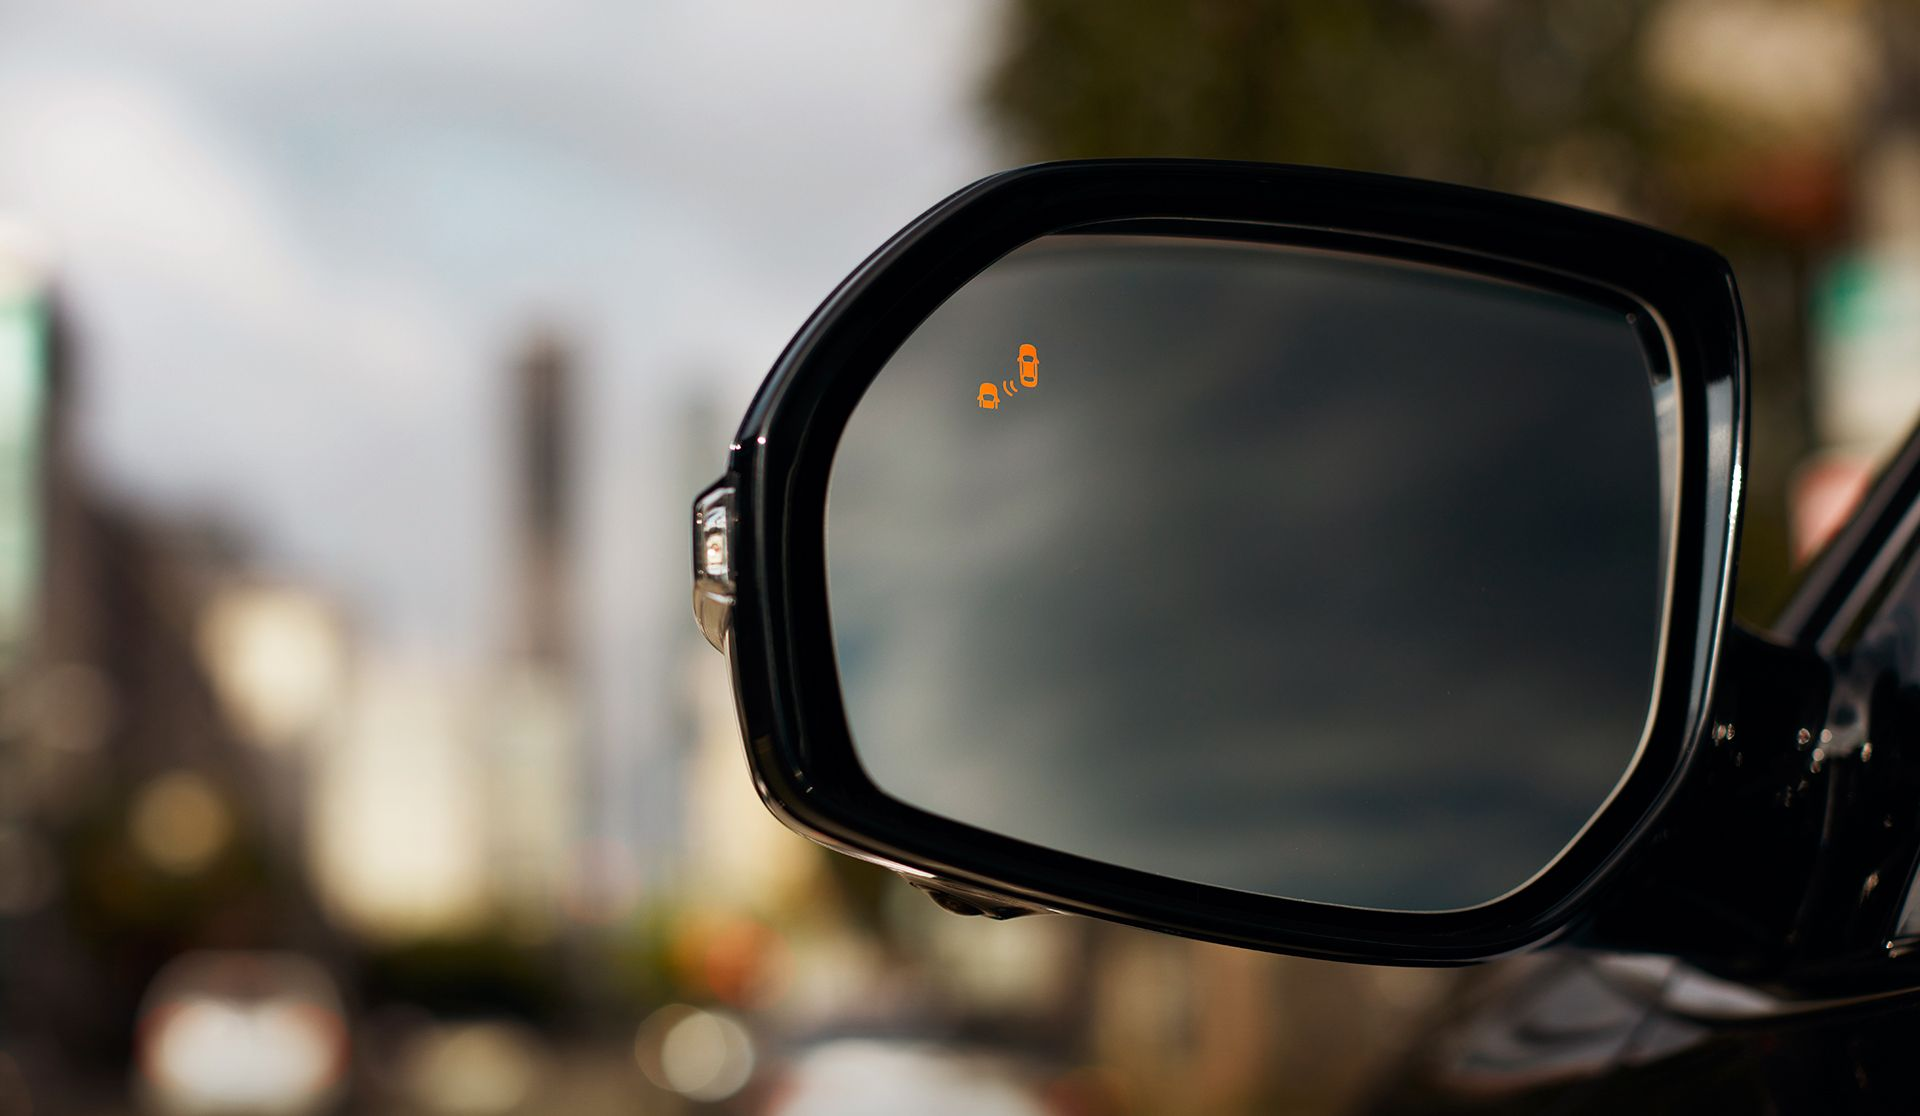 Hyundai Santa Fe Blind Spot Detection